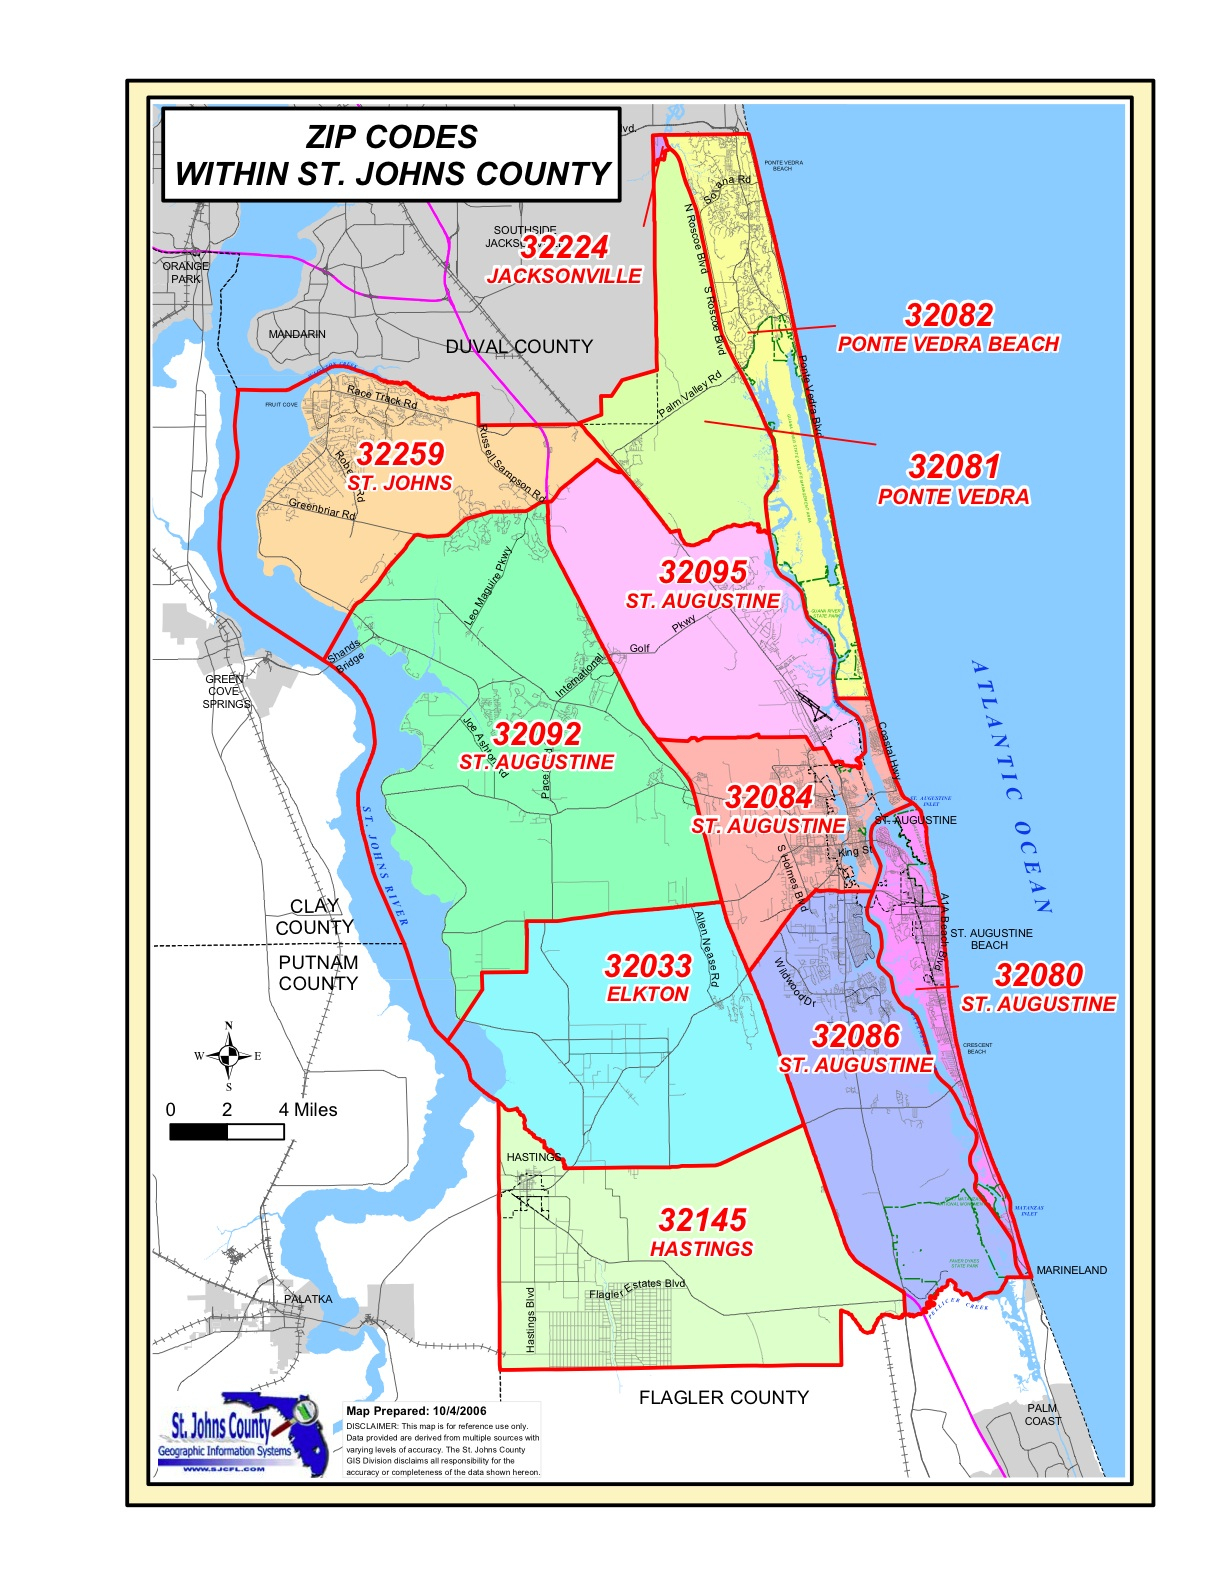 St. Johns County Zip Codes - Where Is St Augustine Florida On The Map